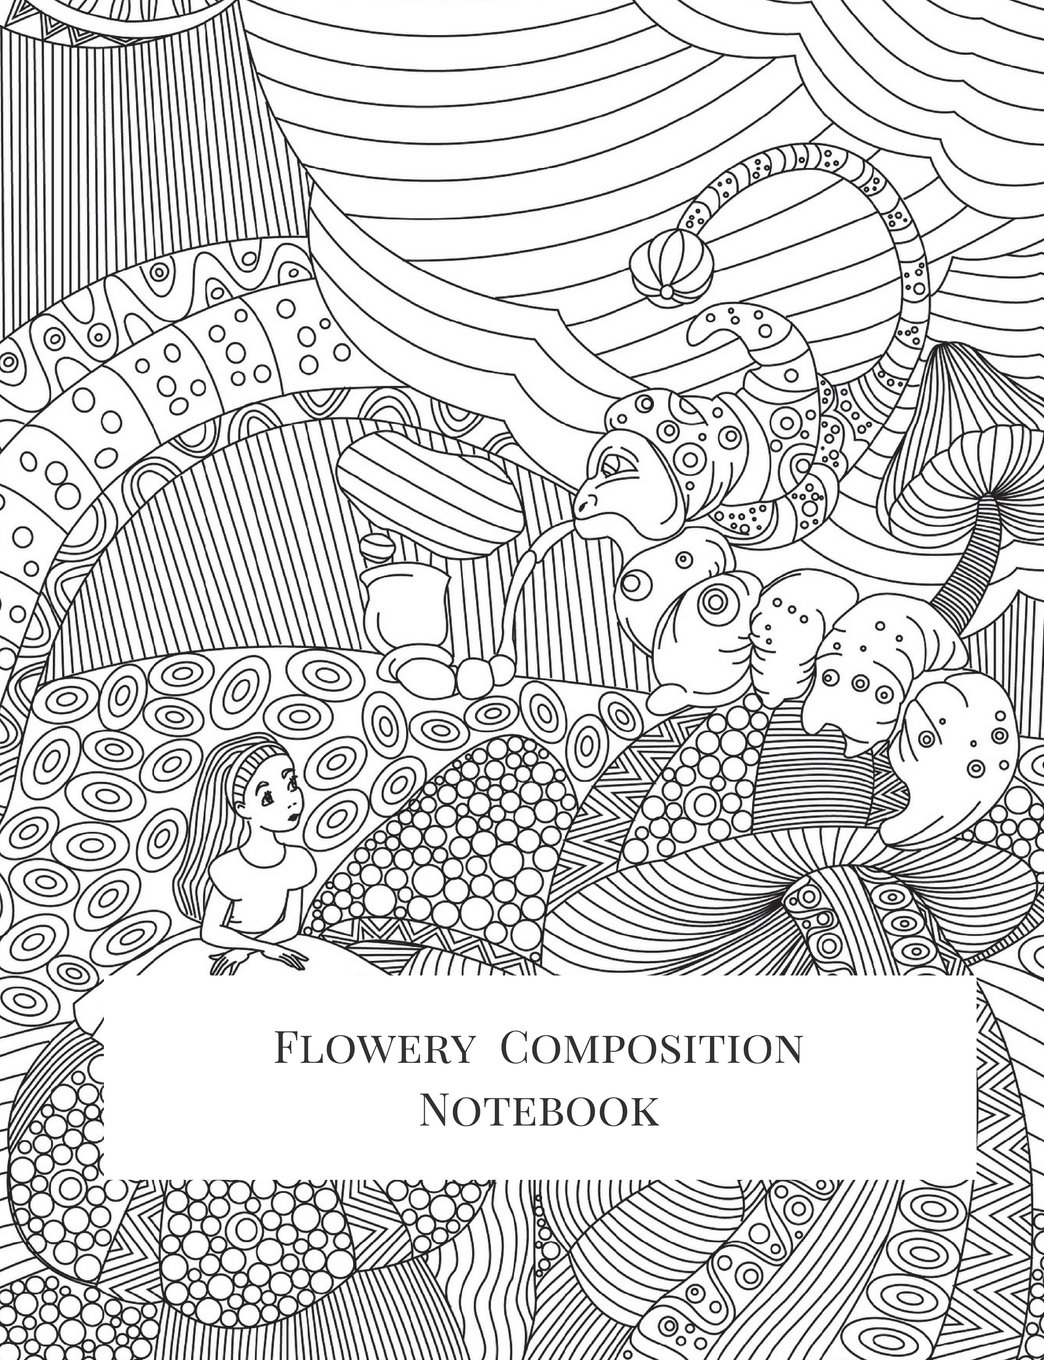 Flowery Composition Notebook: Composition Book, Journal, Cute Notebooks, Cool Notebooks, School Books (7.44 x 9.69) Large, Composition Notebook College Ruled Paper, 100 Sheets pdf epub